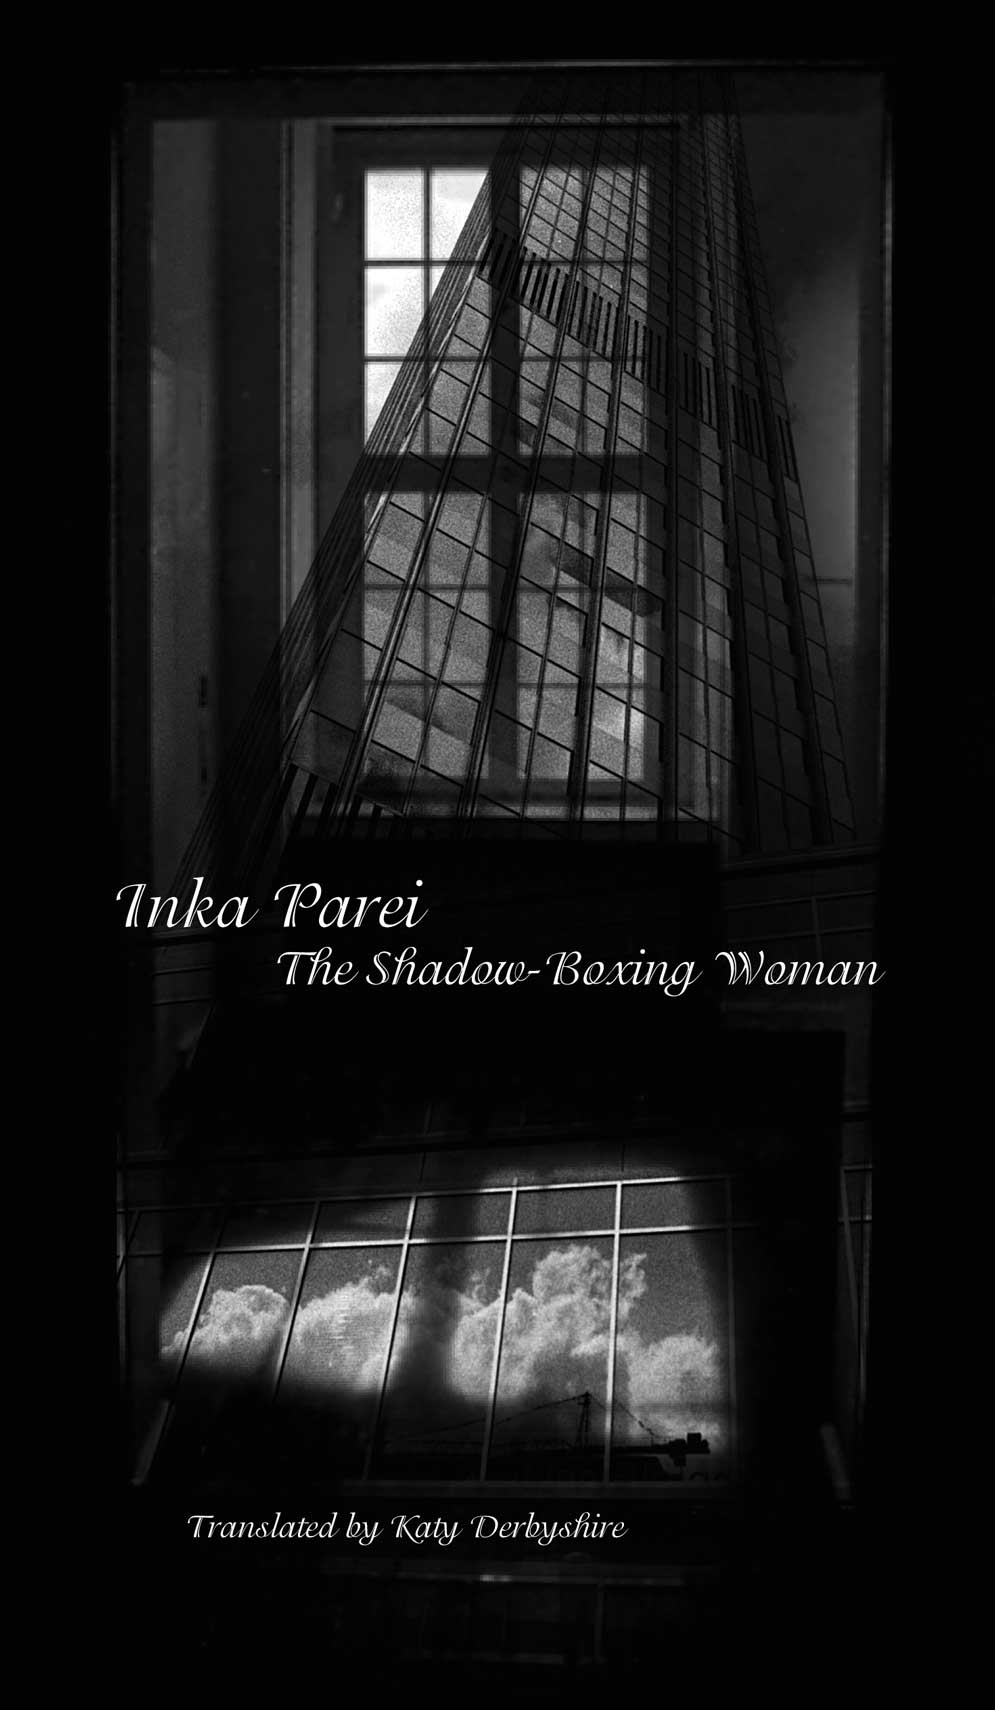 The Shadow-Boxing Woman by Inka Parei  | Seagull Books